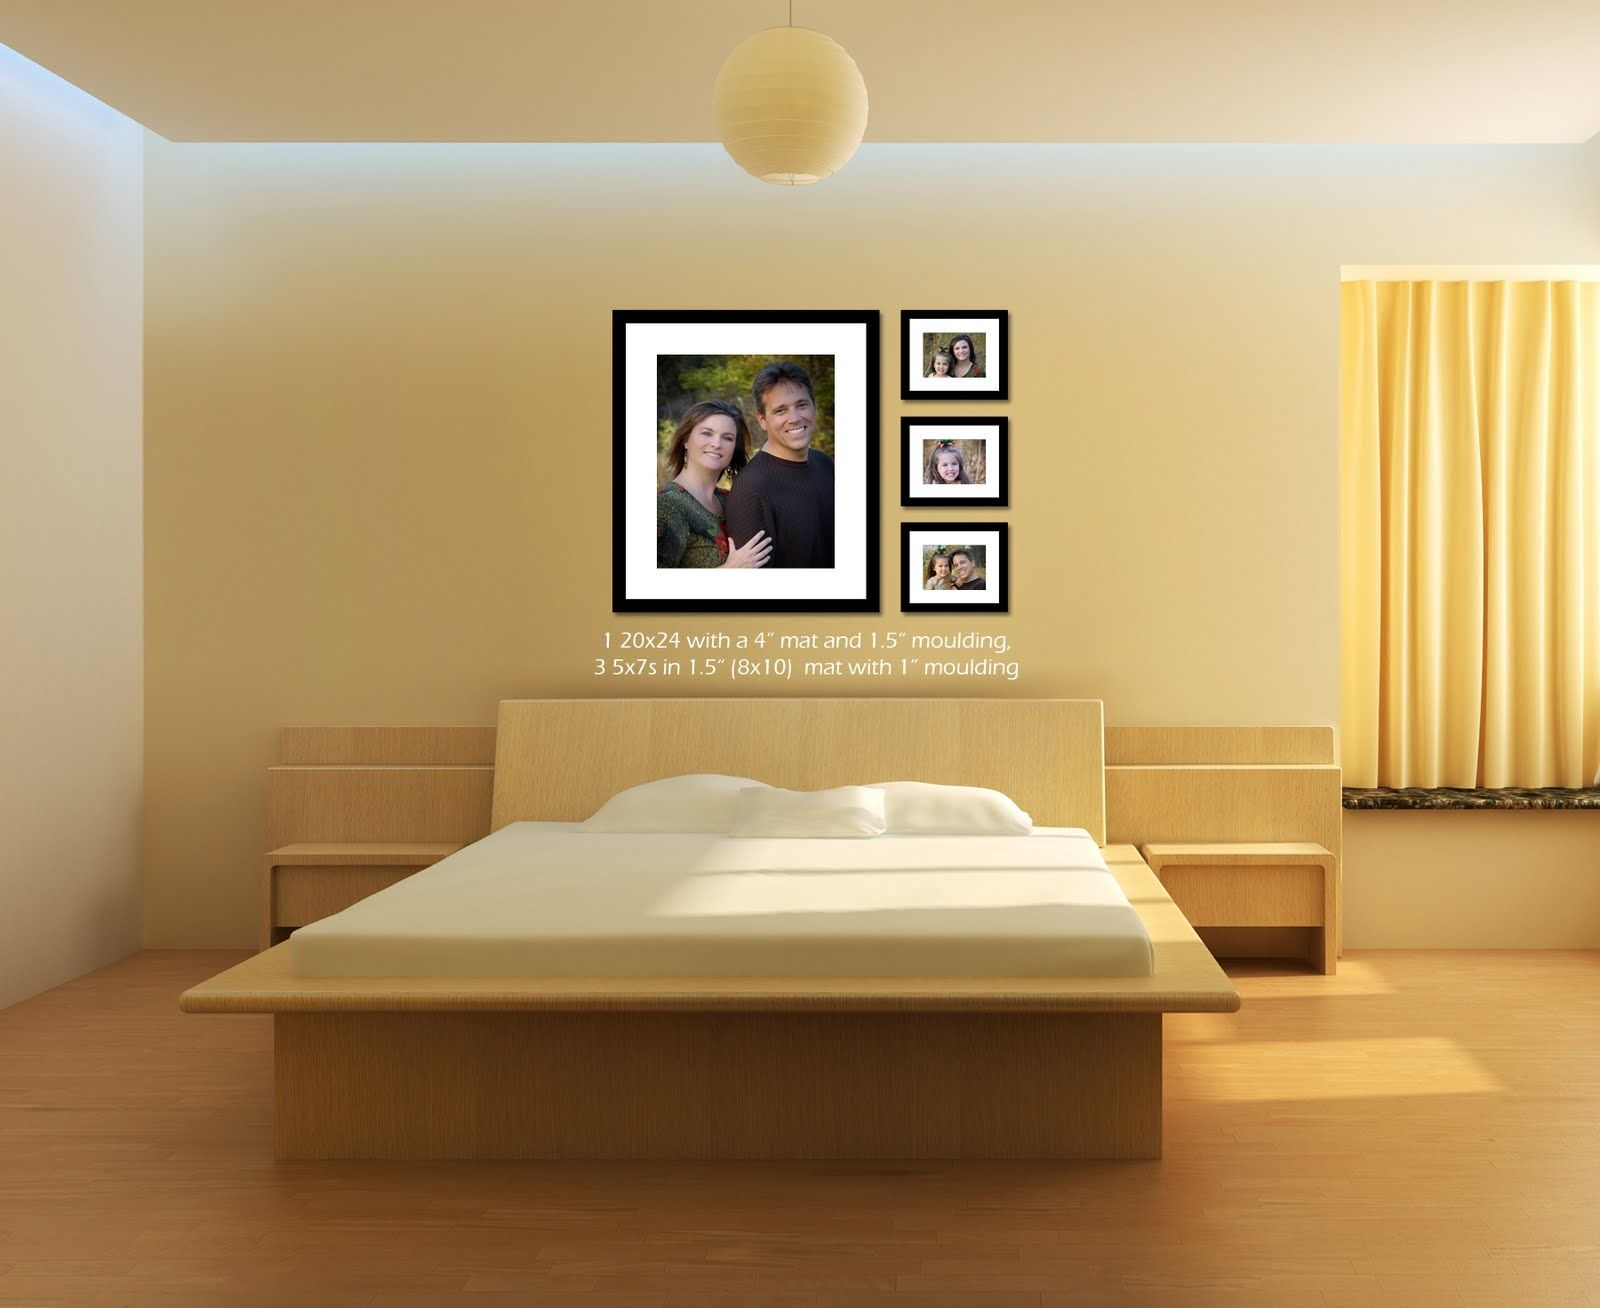 Ideas To Decorate Bedroom Walls With Pictures   Bedroom Design ...